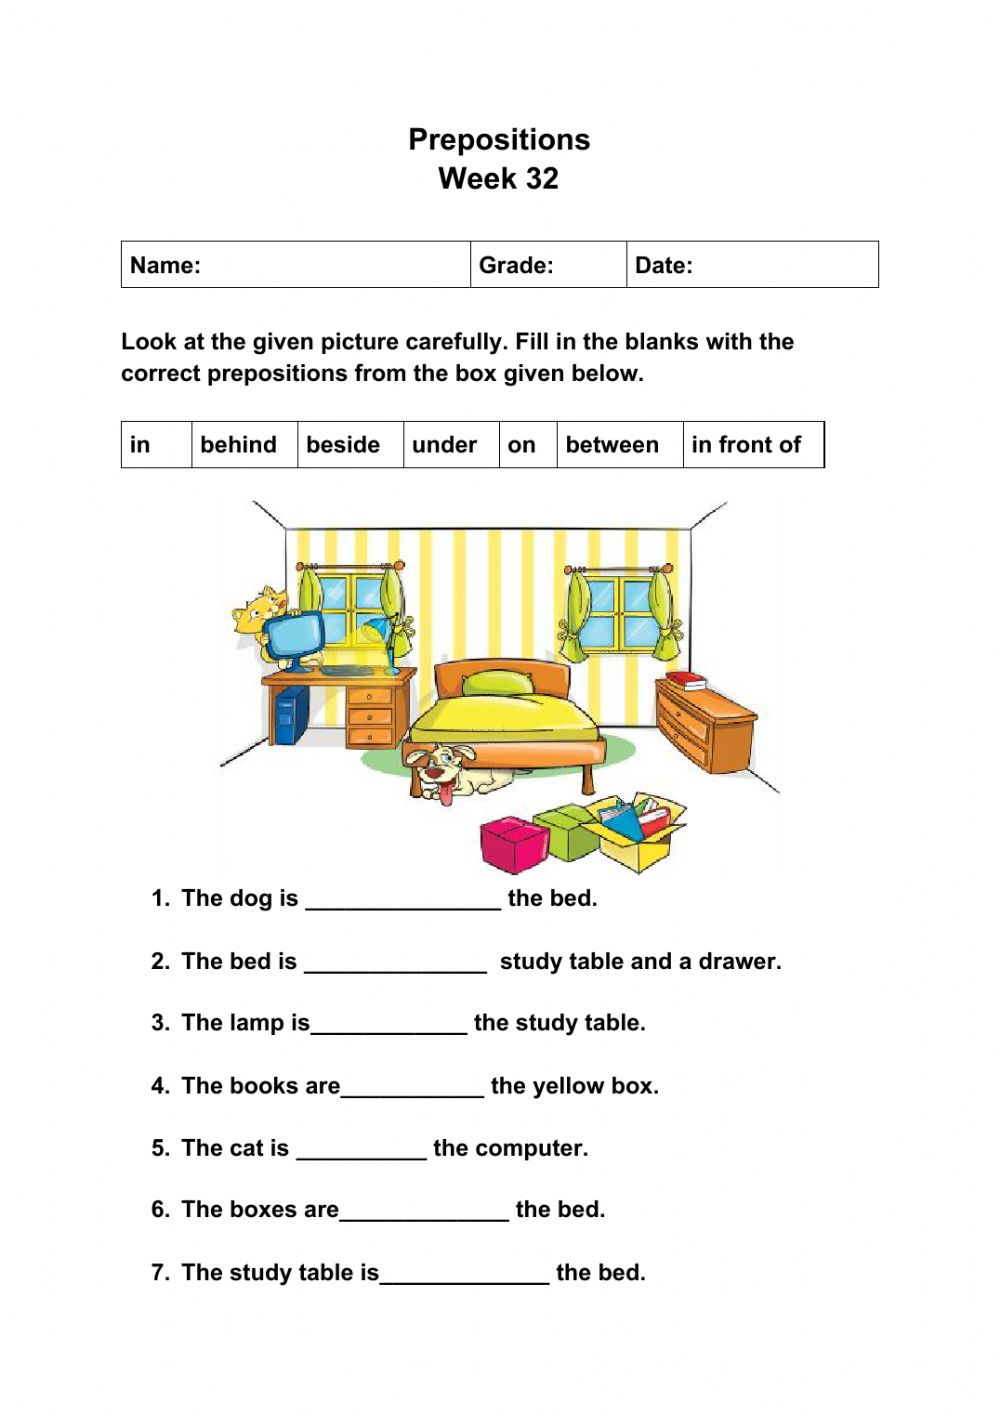 medium resolution of Prepositions online exercise for Grade 2